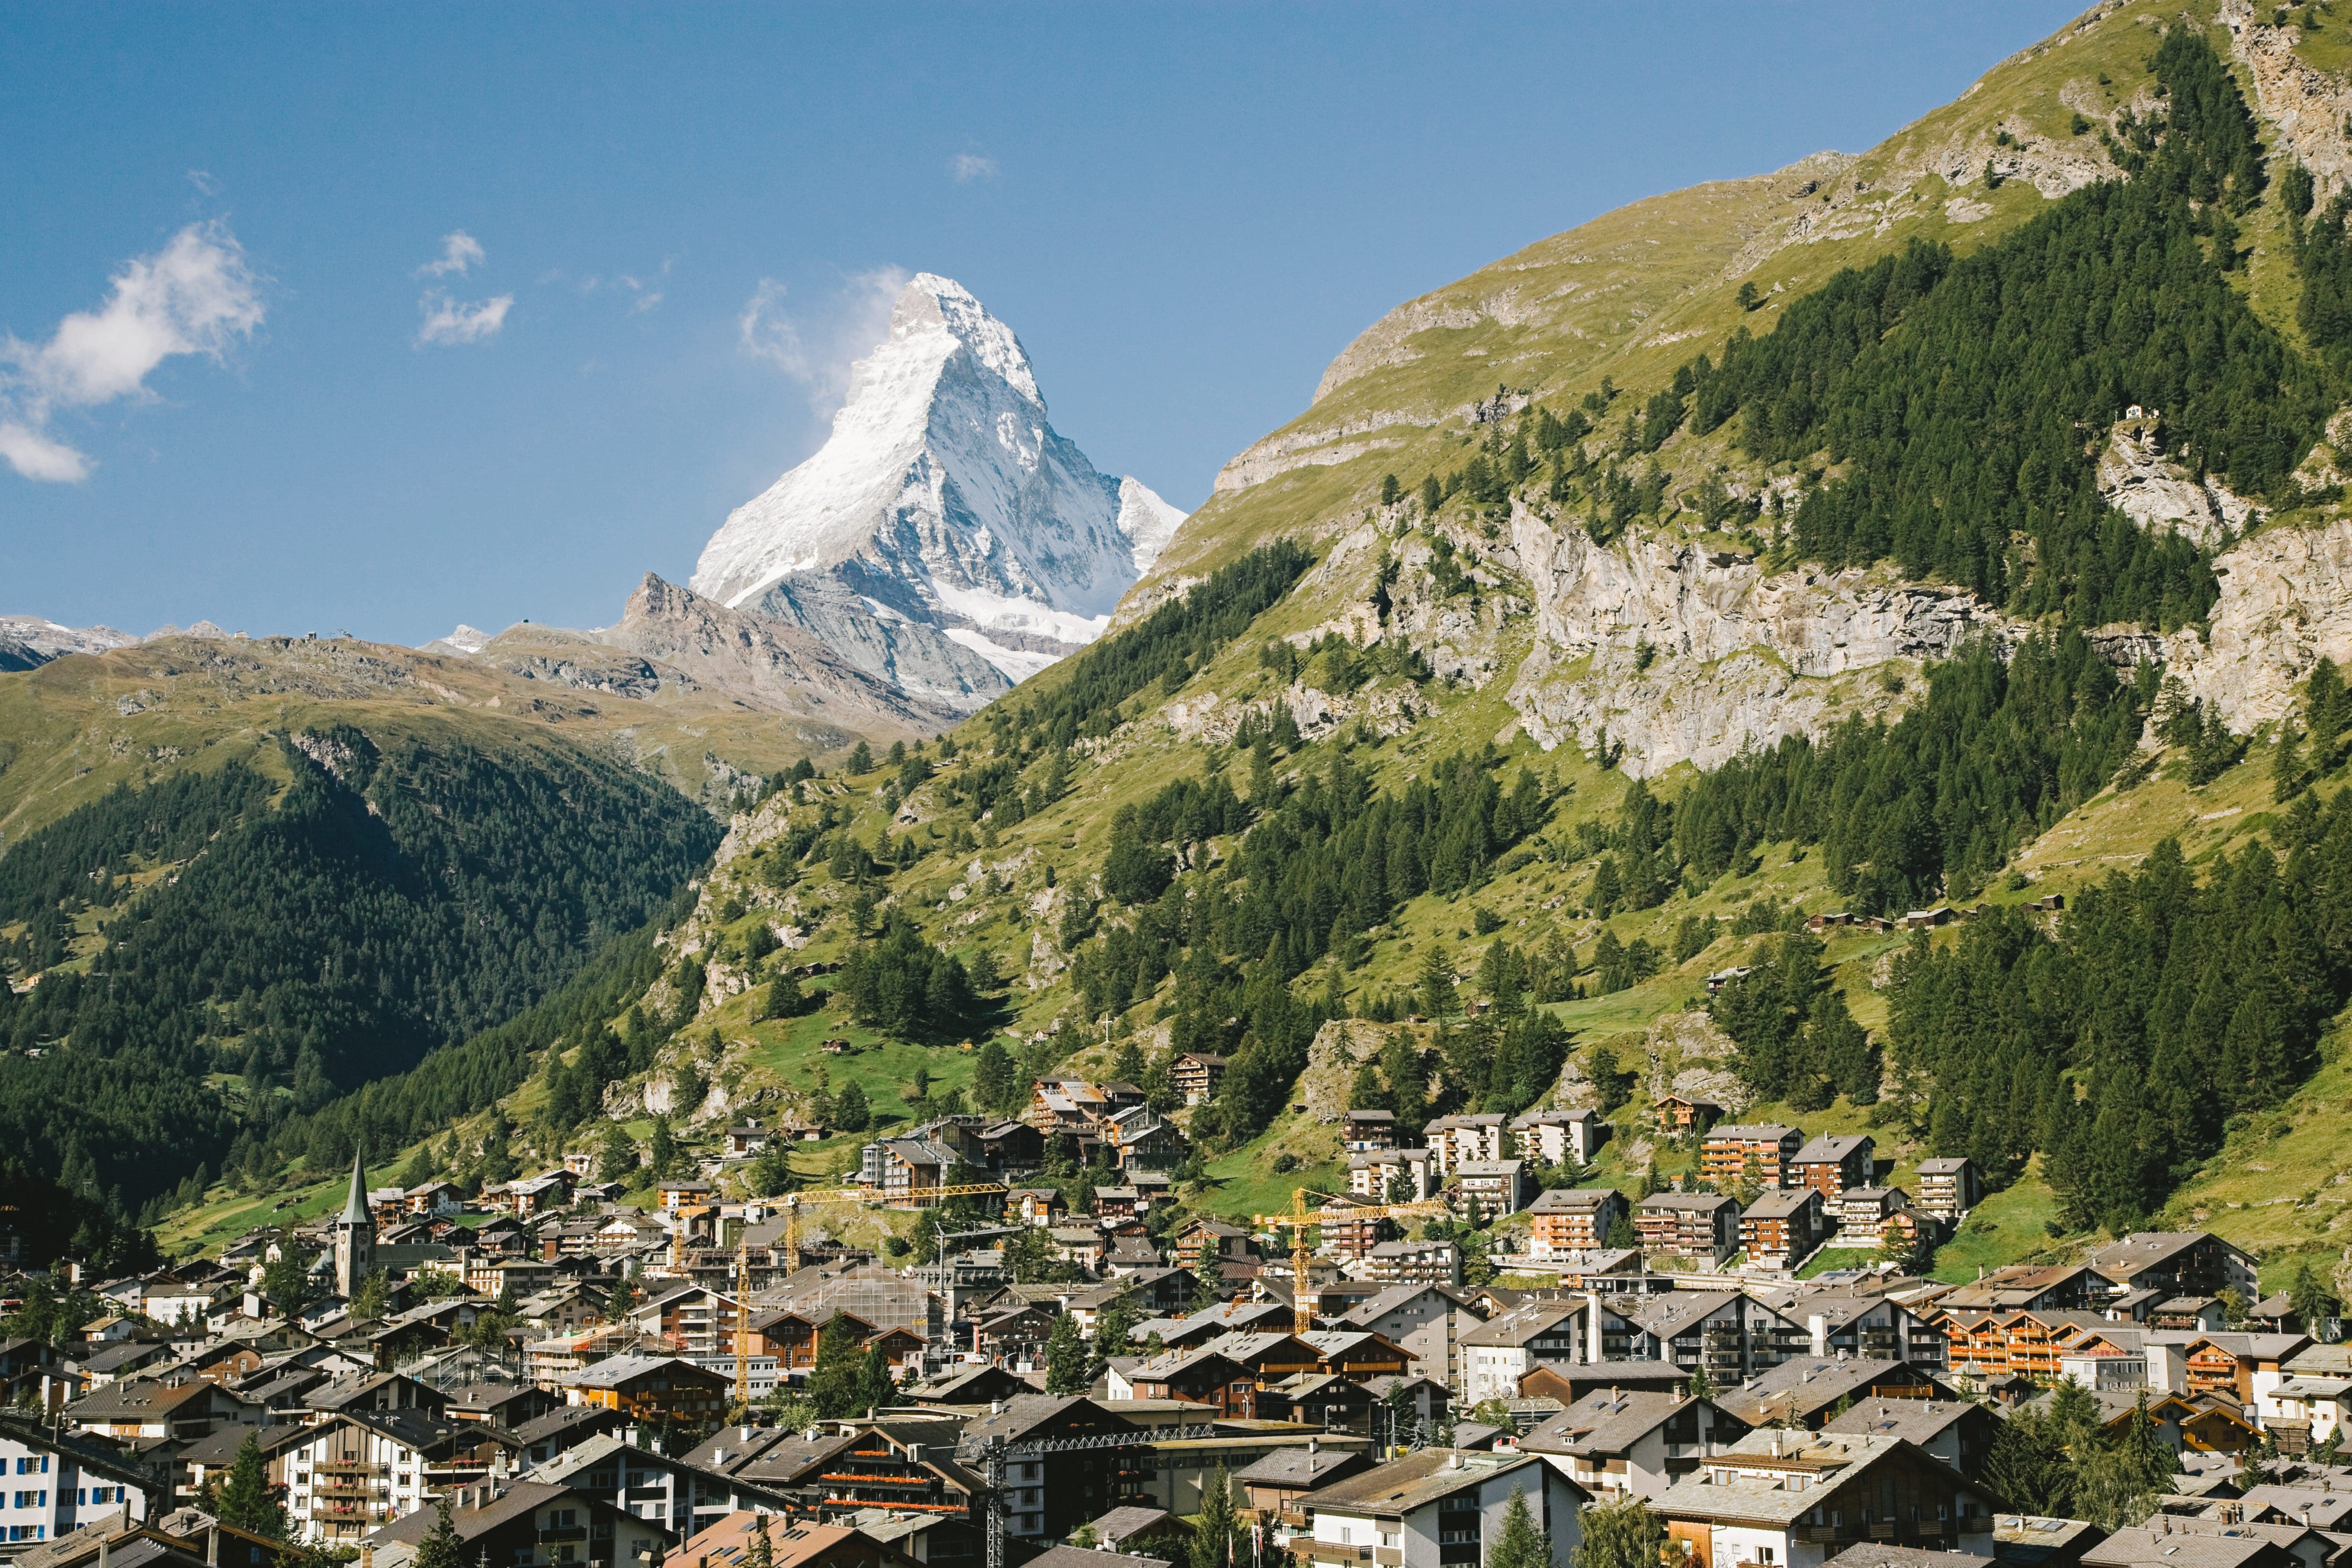 View of the town of Zermatt with the imposing mountains behind